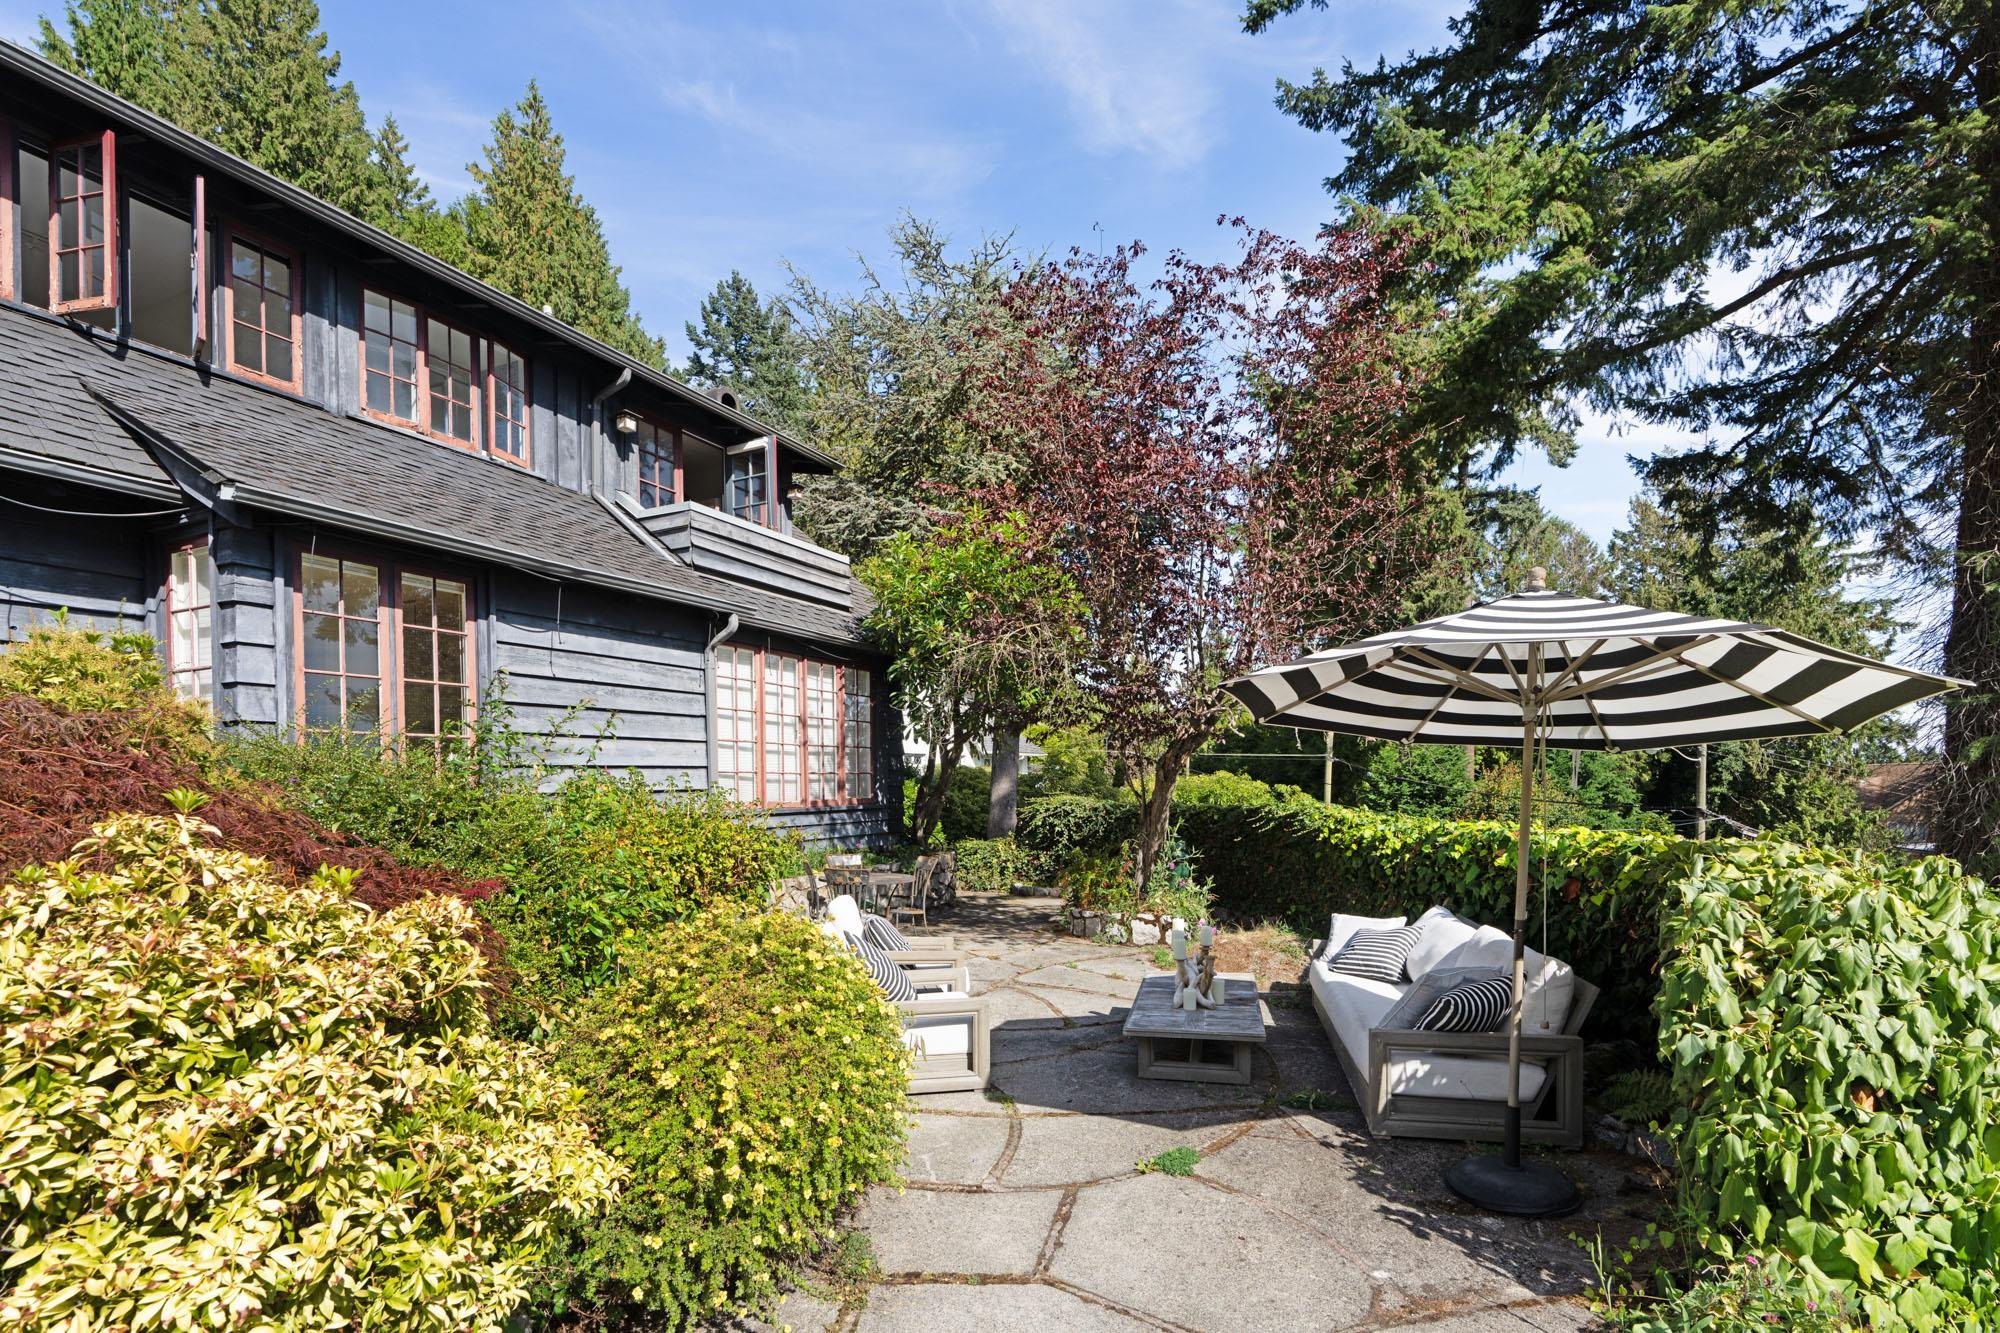 Listing image of 4441 N PICCADILLY ROAD